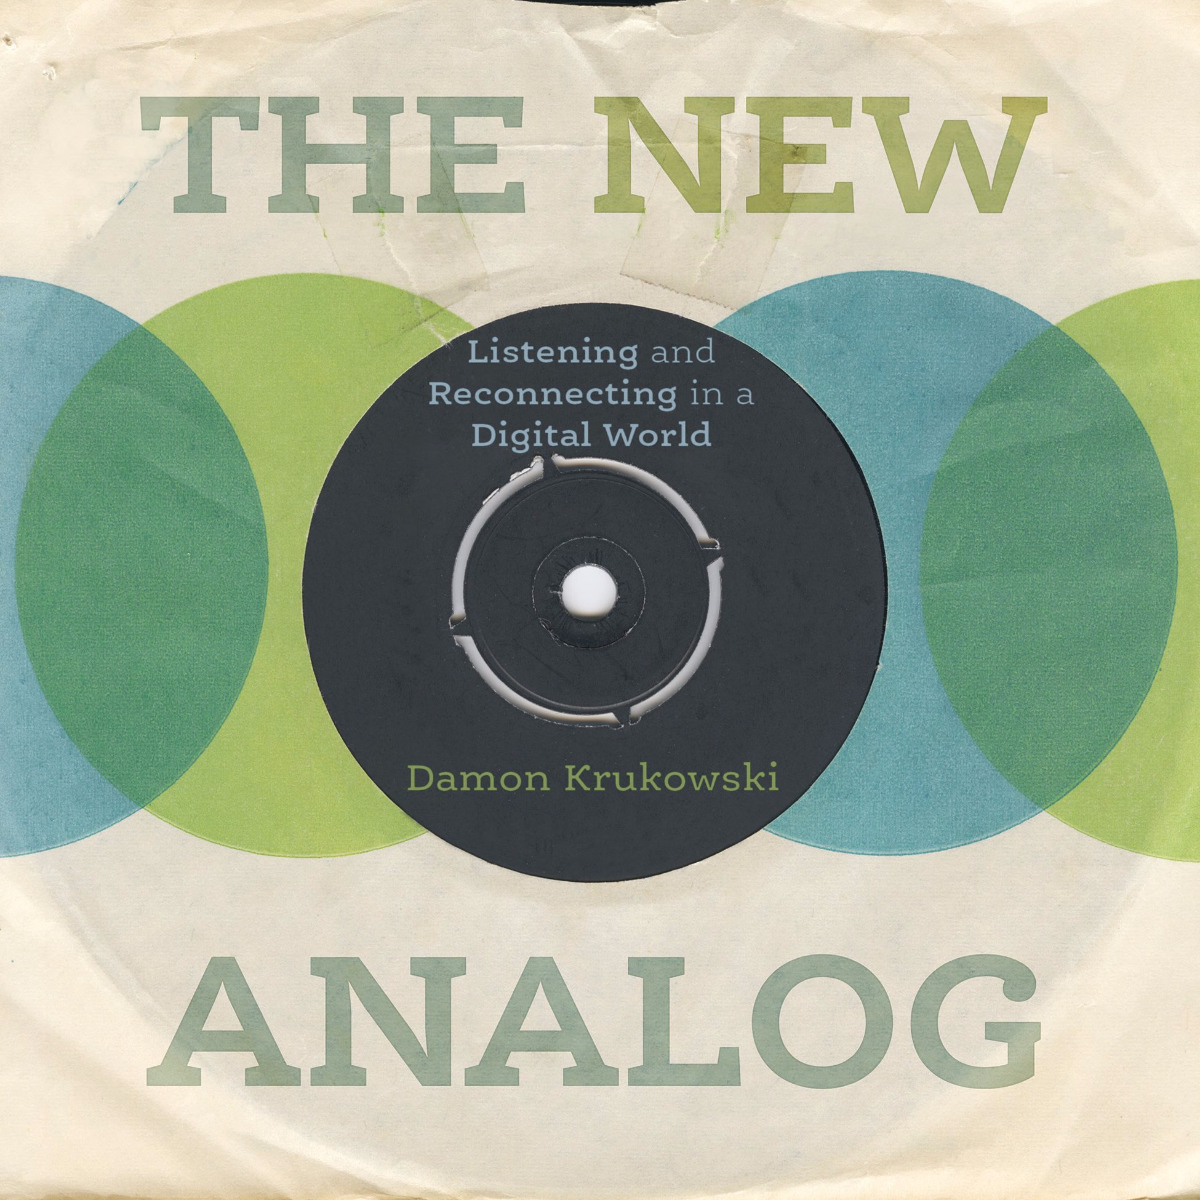 Damon Krakowski, author of 'The New Analog: Listening and Reconnecting in a Digital World,' reads from his book at Quimby's Bookstore in Chicago on Tuesday, May 2, 2017 (Book cover image courtesy of the author)